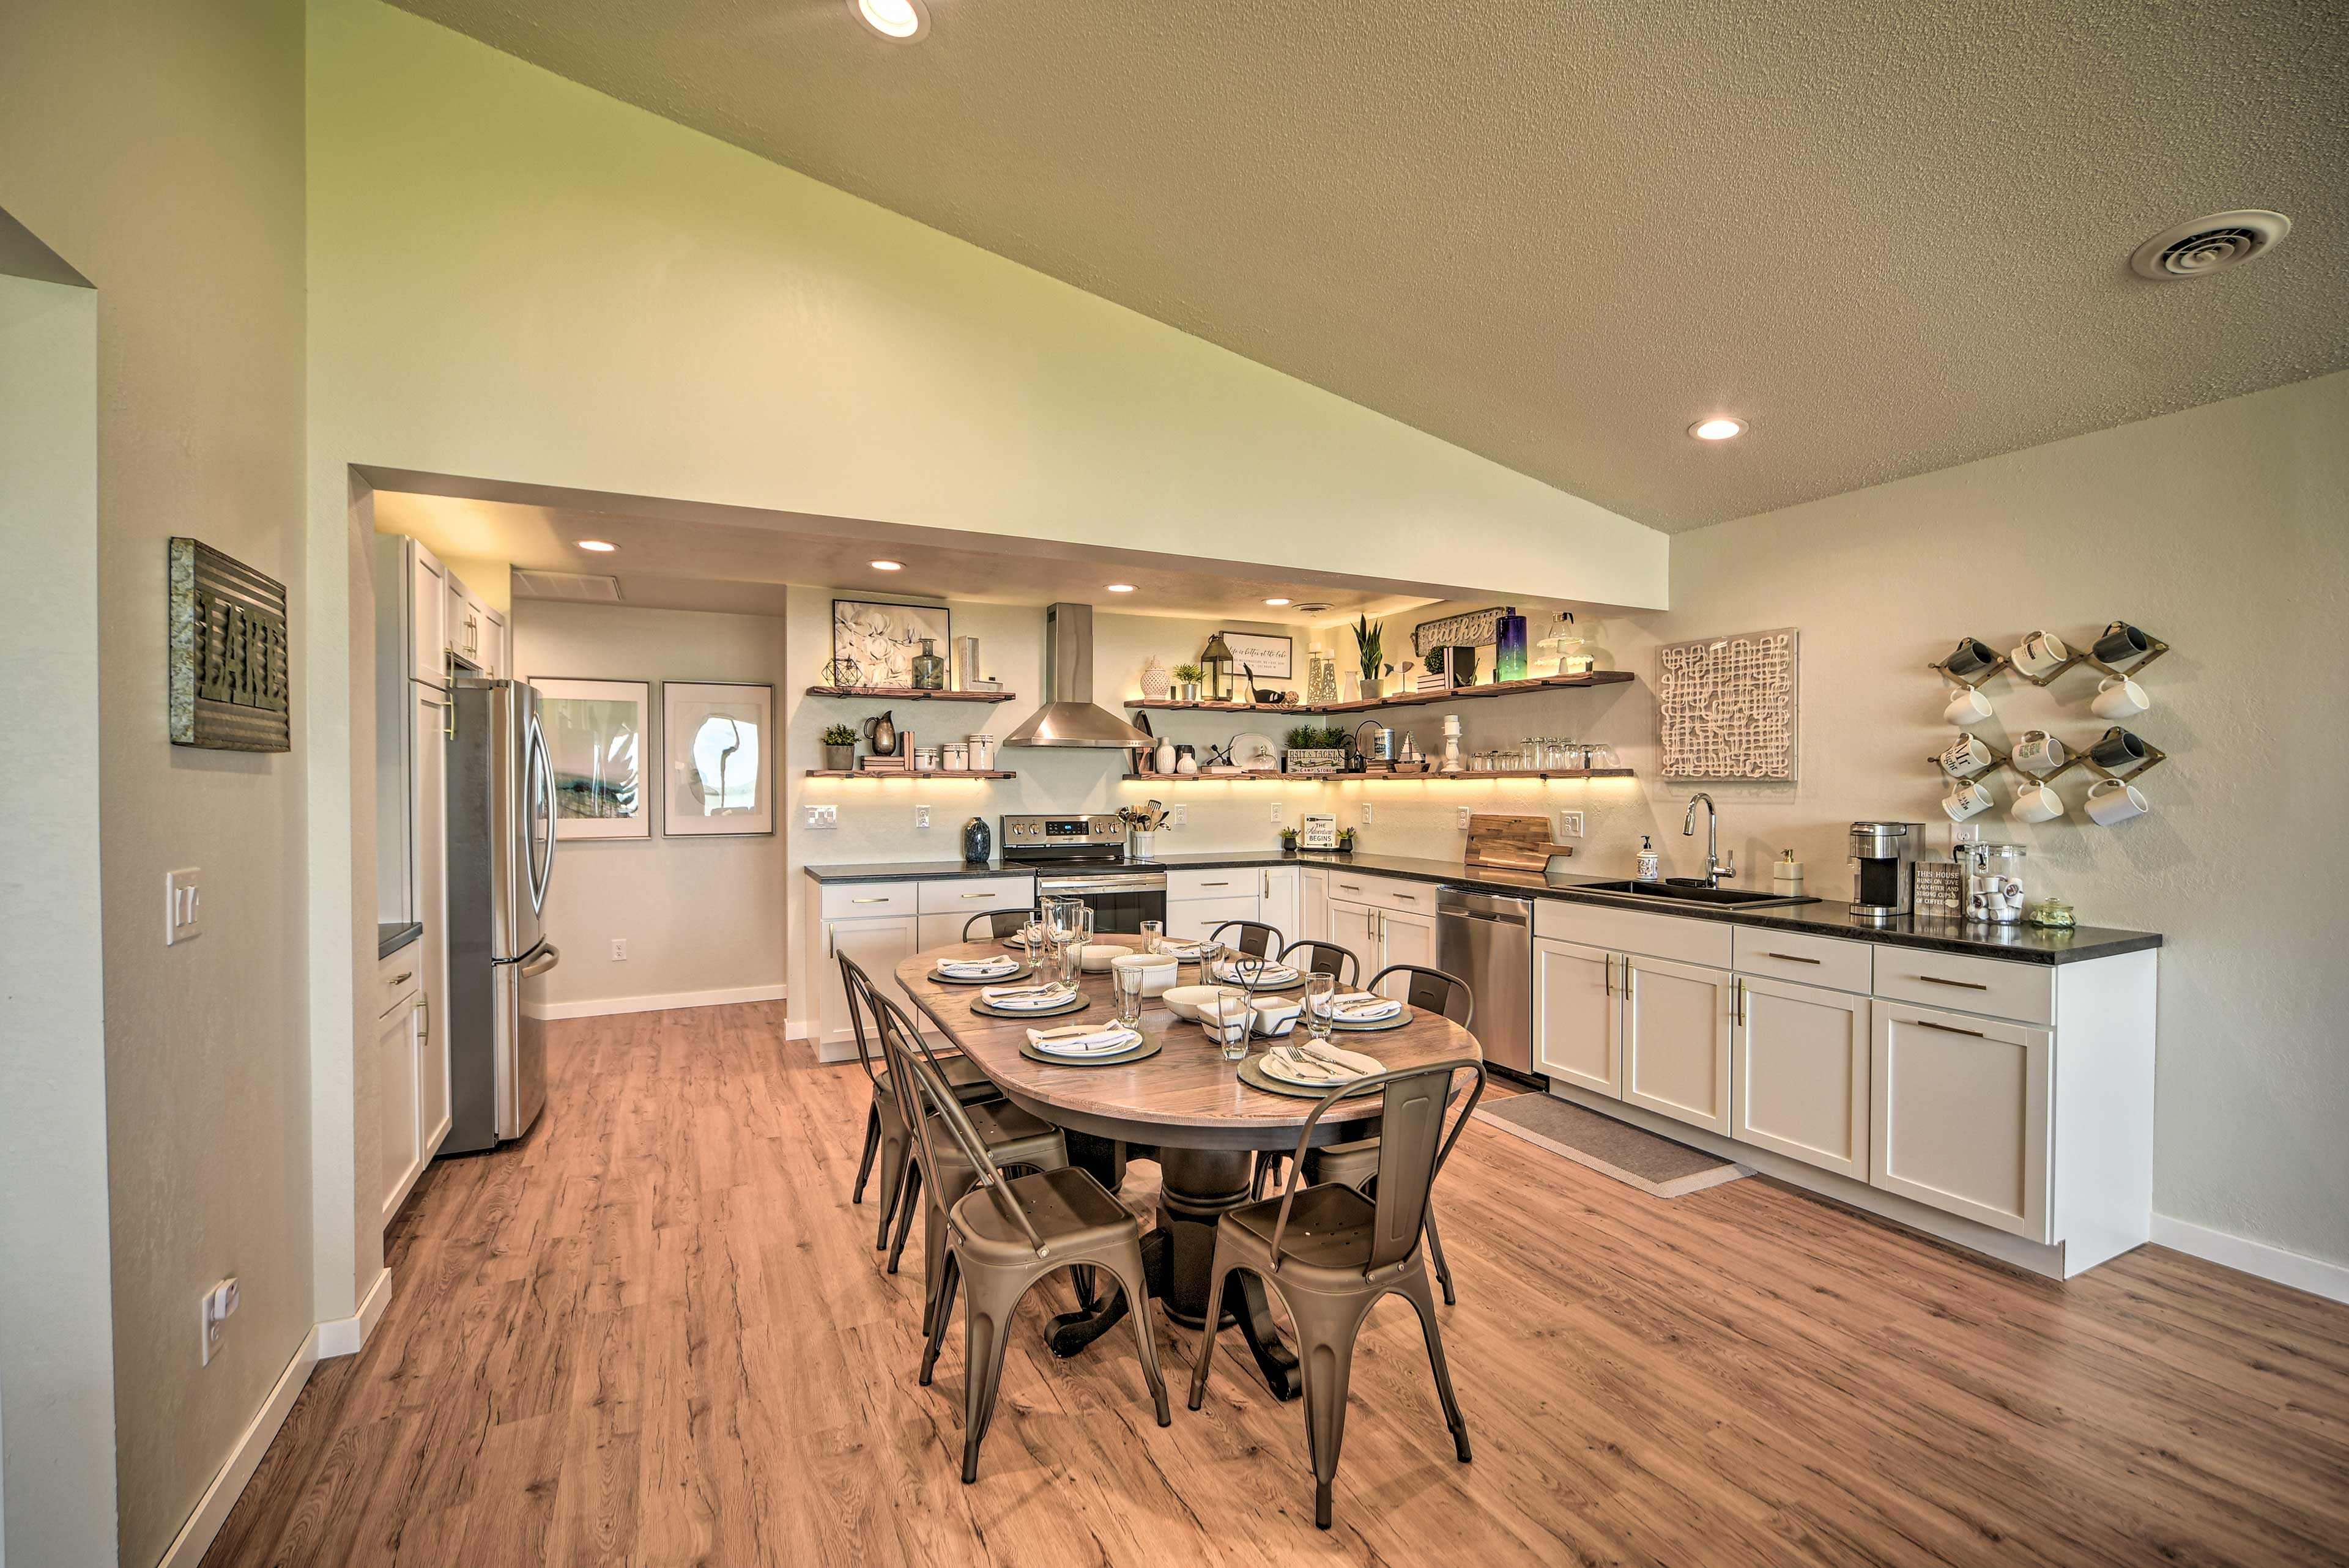 House Interior   Kitchen   Fully Equipped